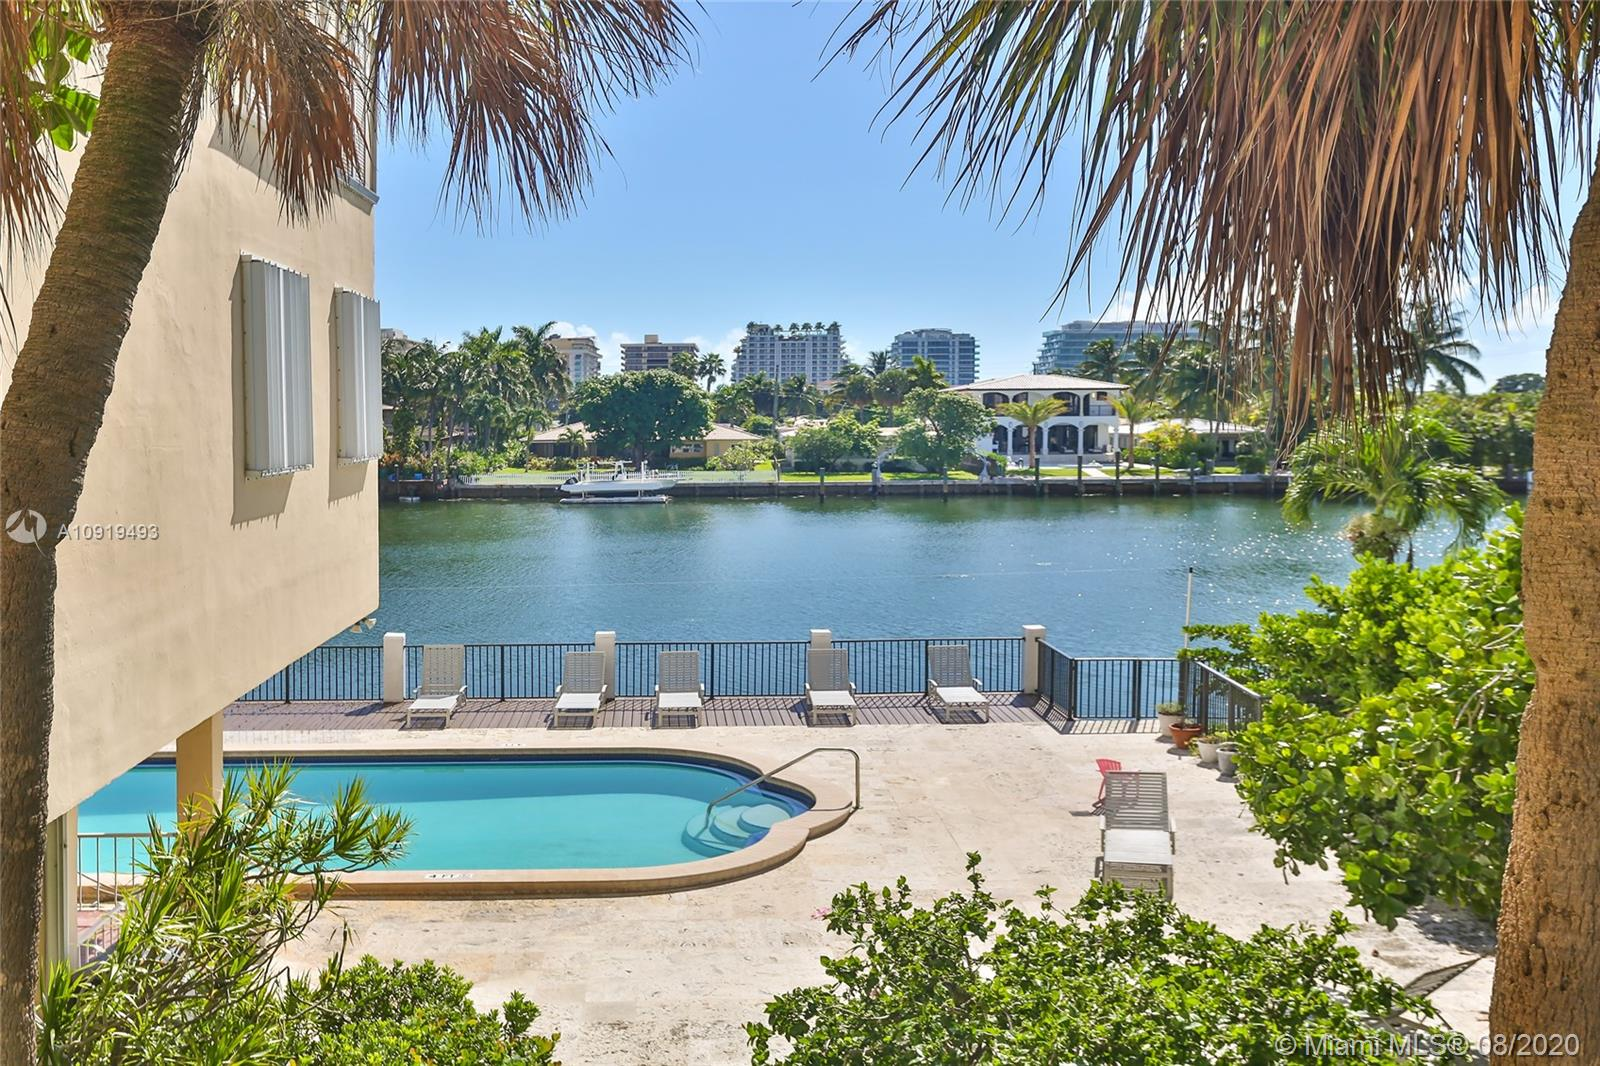 Truly a gorgeous condo with a great floorplan for sale at the Granada in Bay Harbor Islands! Bright, airy & open living/dining area with hurricane-impact sliding glass doors leading out to a private balcony with a direct water view. Conveniently located on the second floor surrounded by lush tree greenery. Beautifully renovated kitchen with wood cabinetry, granite countertops and Kitchen Aid stainless steel appliances. Tile flooring in the living areas and wood floors in the bedrooms. Both bedrooms have full en-suite bathrooms & large closets. There is also a half bathroom and an additional storage unit. The Granada has a waterfront pool & assigned parking. Walk to the beach, shops & restaurants. Zoned for Bay Harbor elementary & middle schools. Dogs are not allowed and renting is limited.